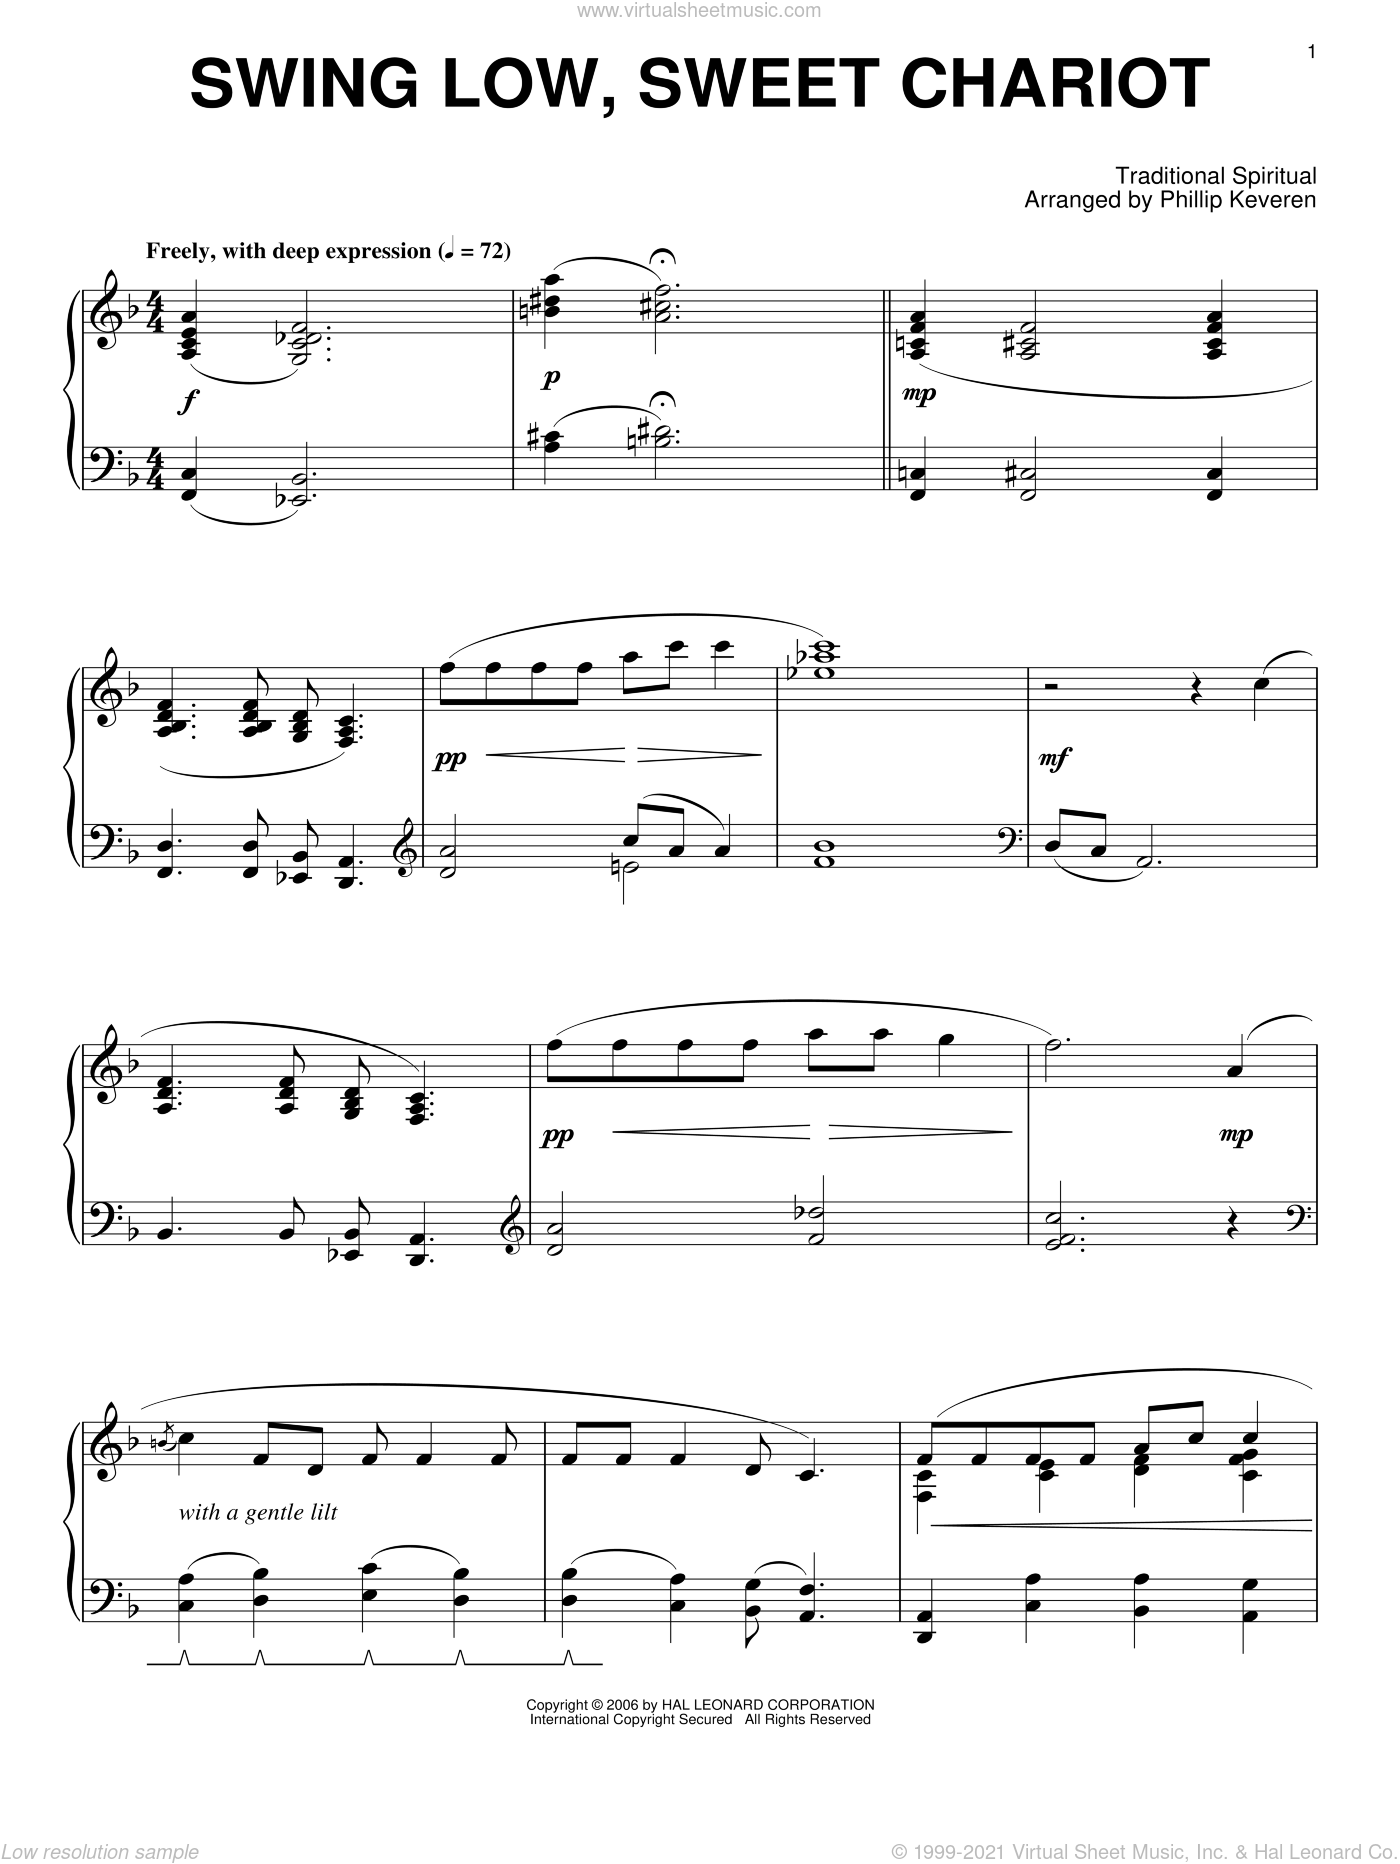 Swing Low, Sweet Chariot sheet music for piano solo